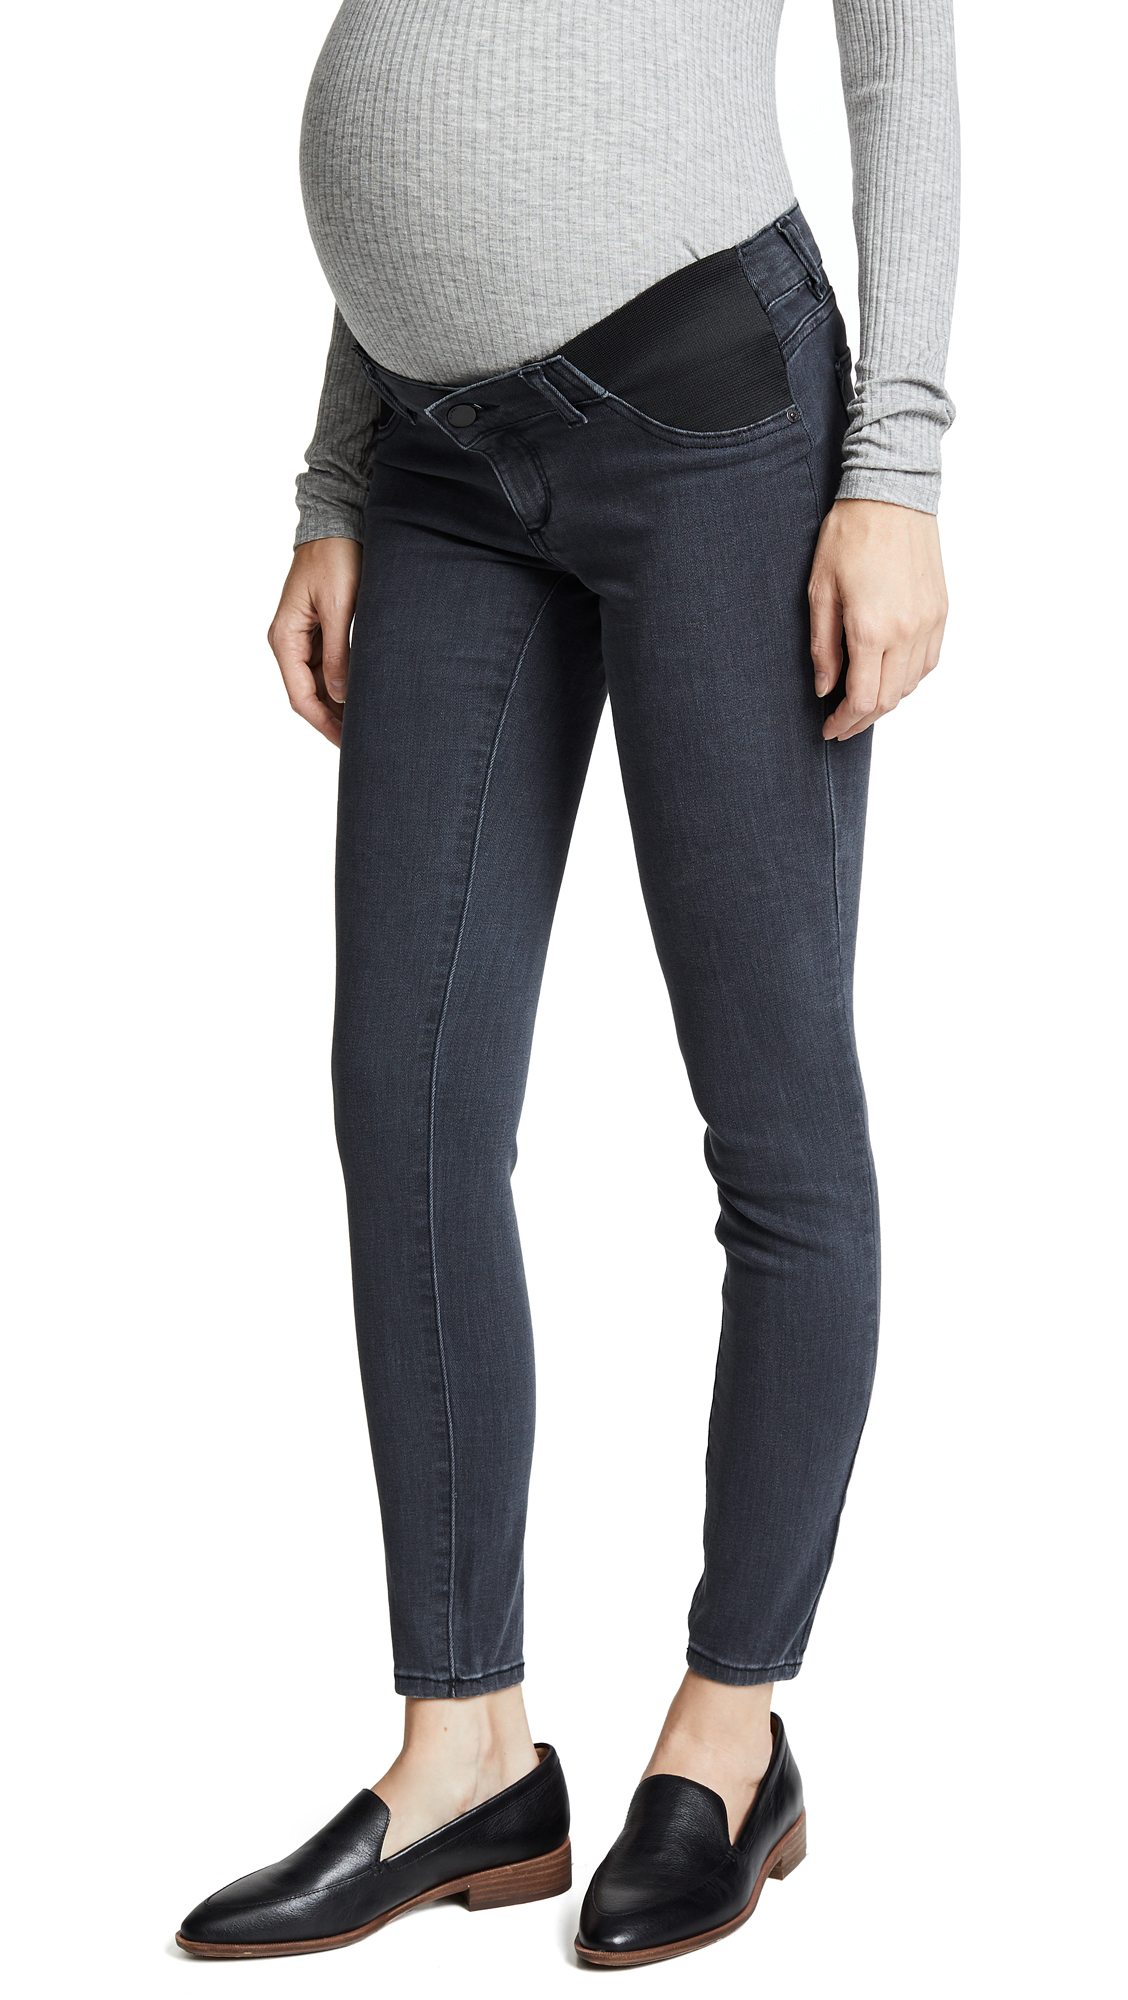 Florence Maternity Jeans